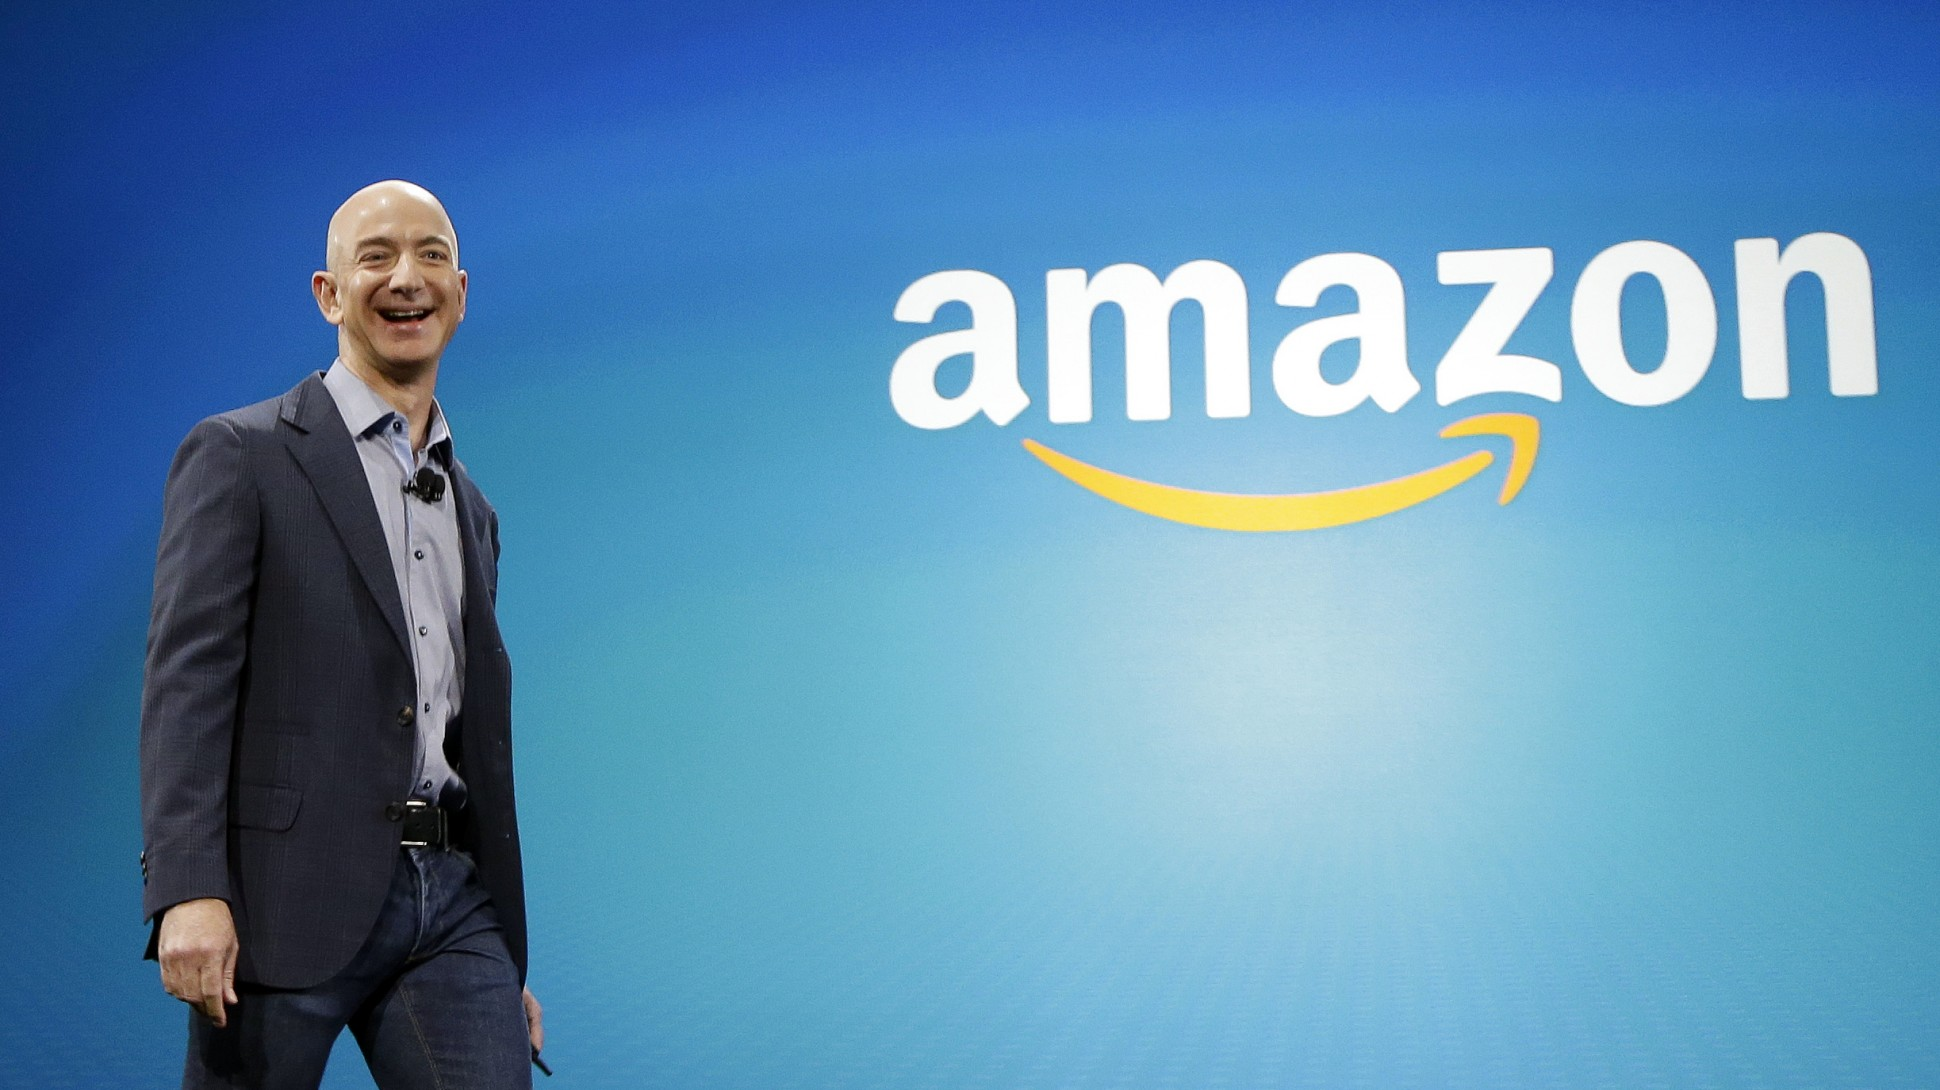 Bezos Amazon CEO marketing ecommerce